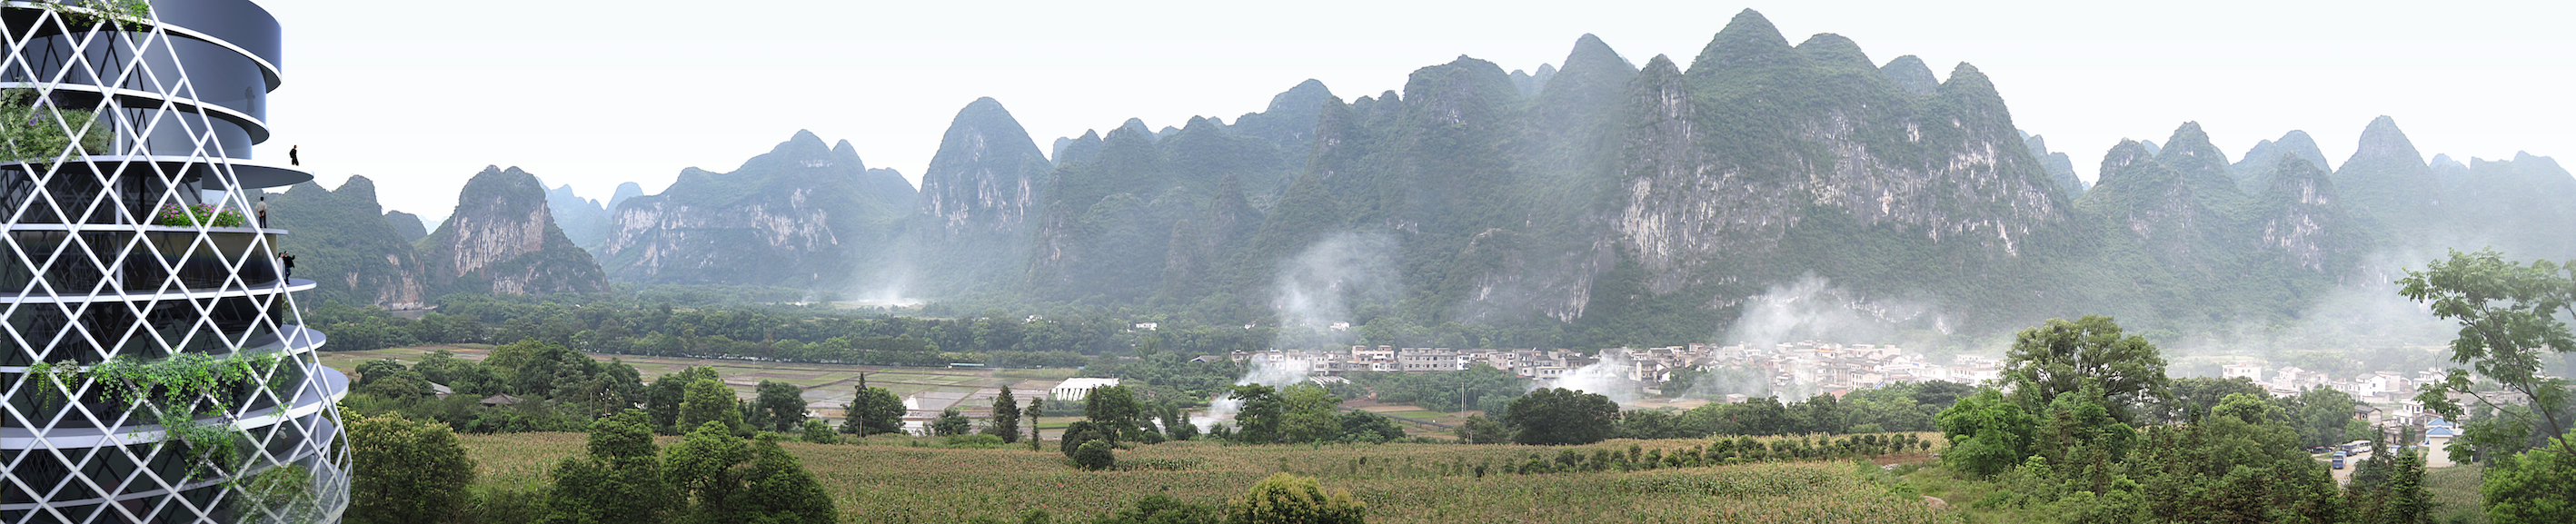 Atelier_Touchard_Guilin06